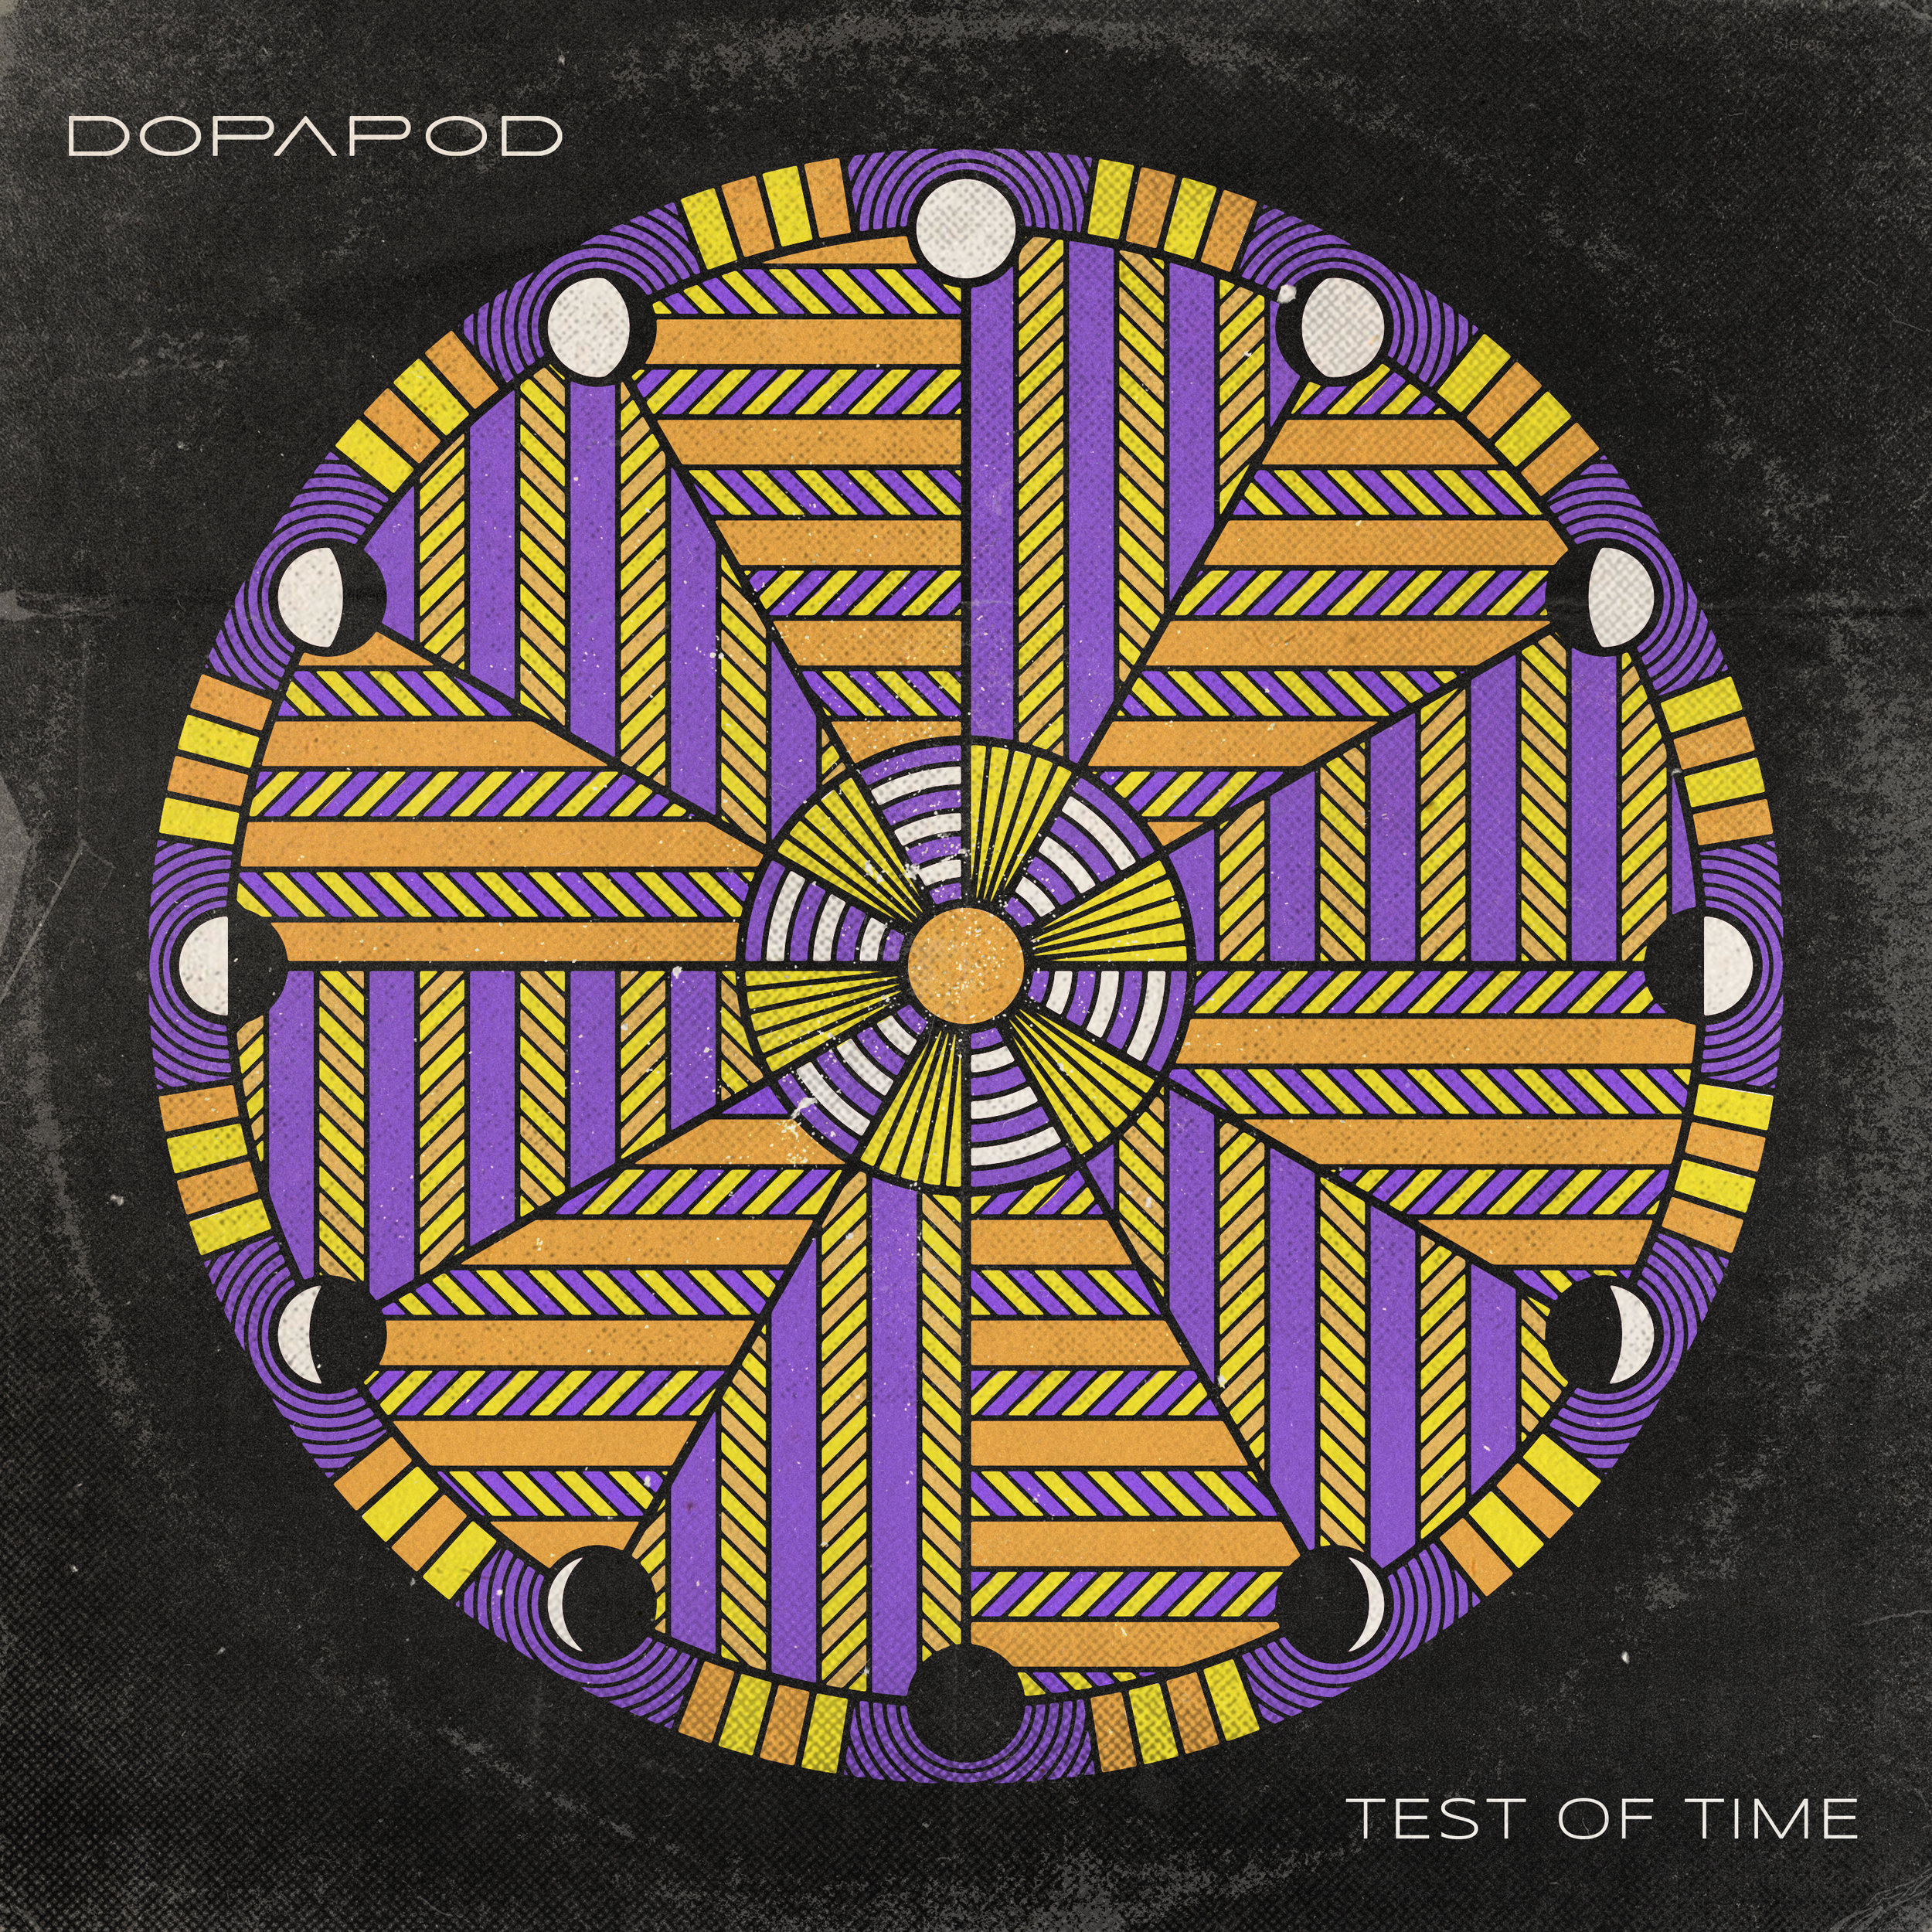 dopapod-test-of-time-3000x3000.jpg